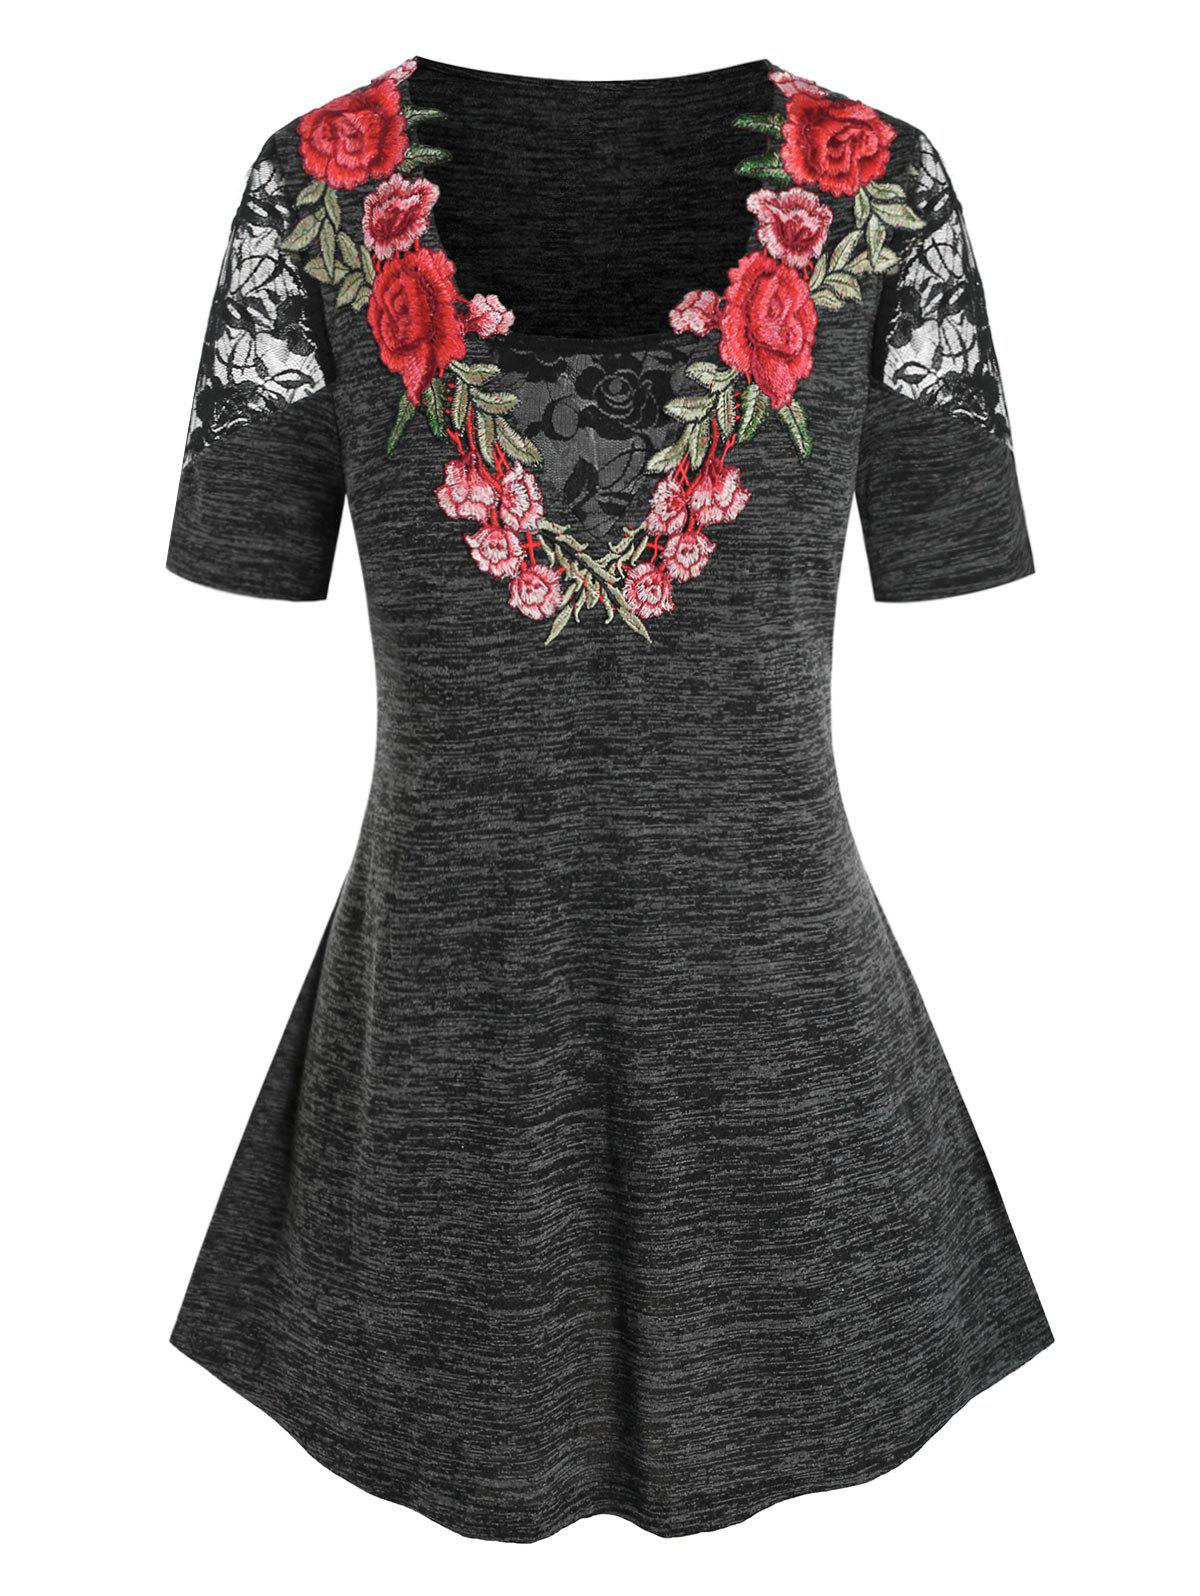 Plus Size Flower Lace Embroidery T Shirt - BLACK 5X